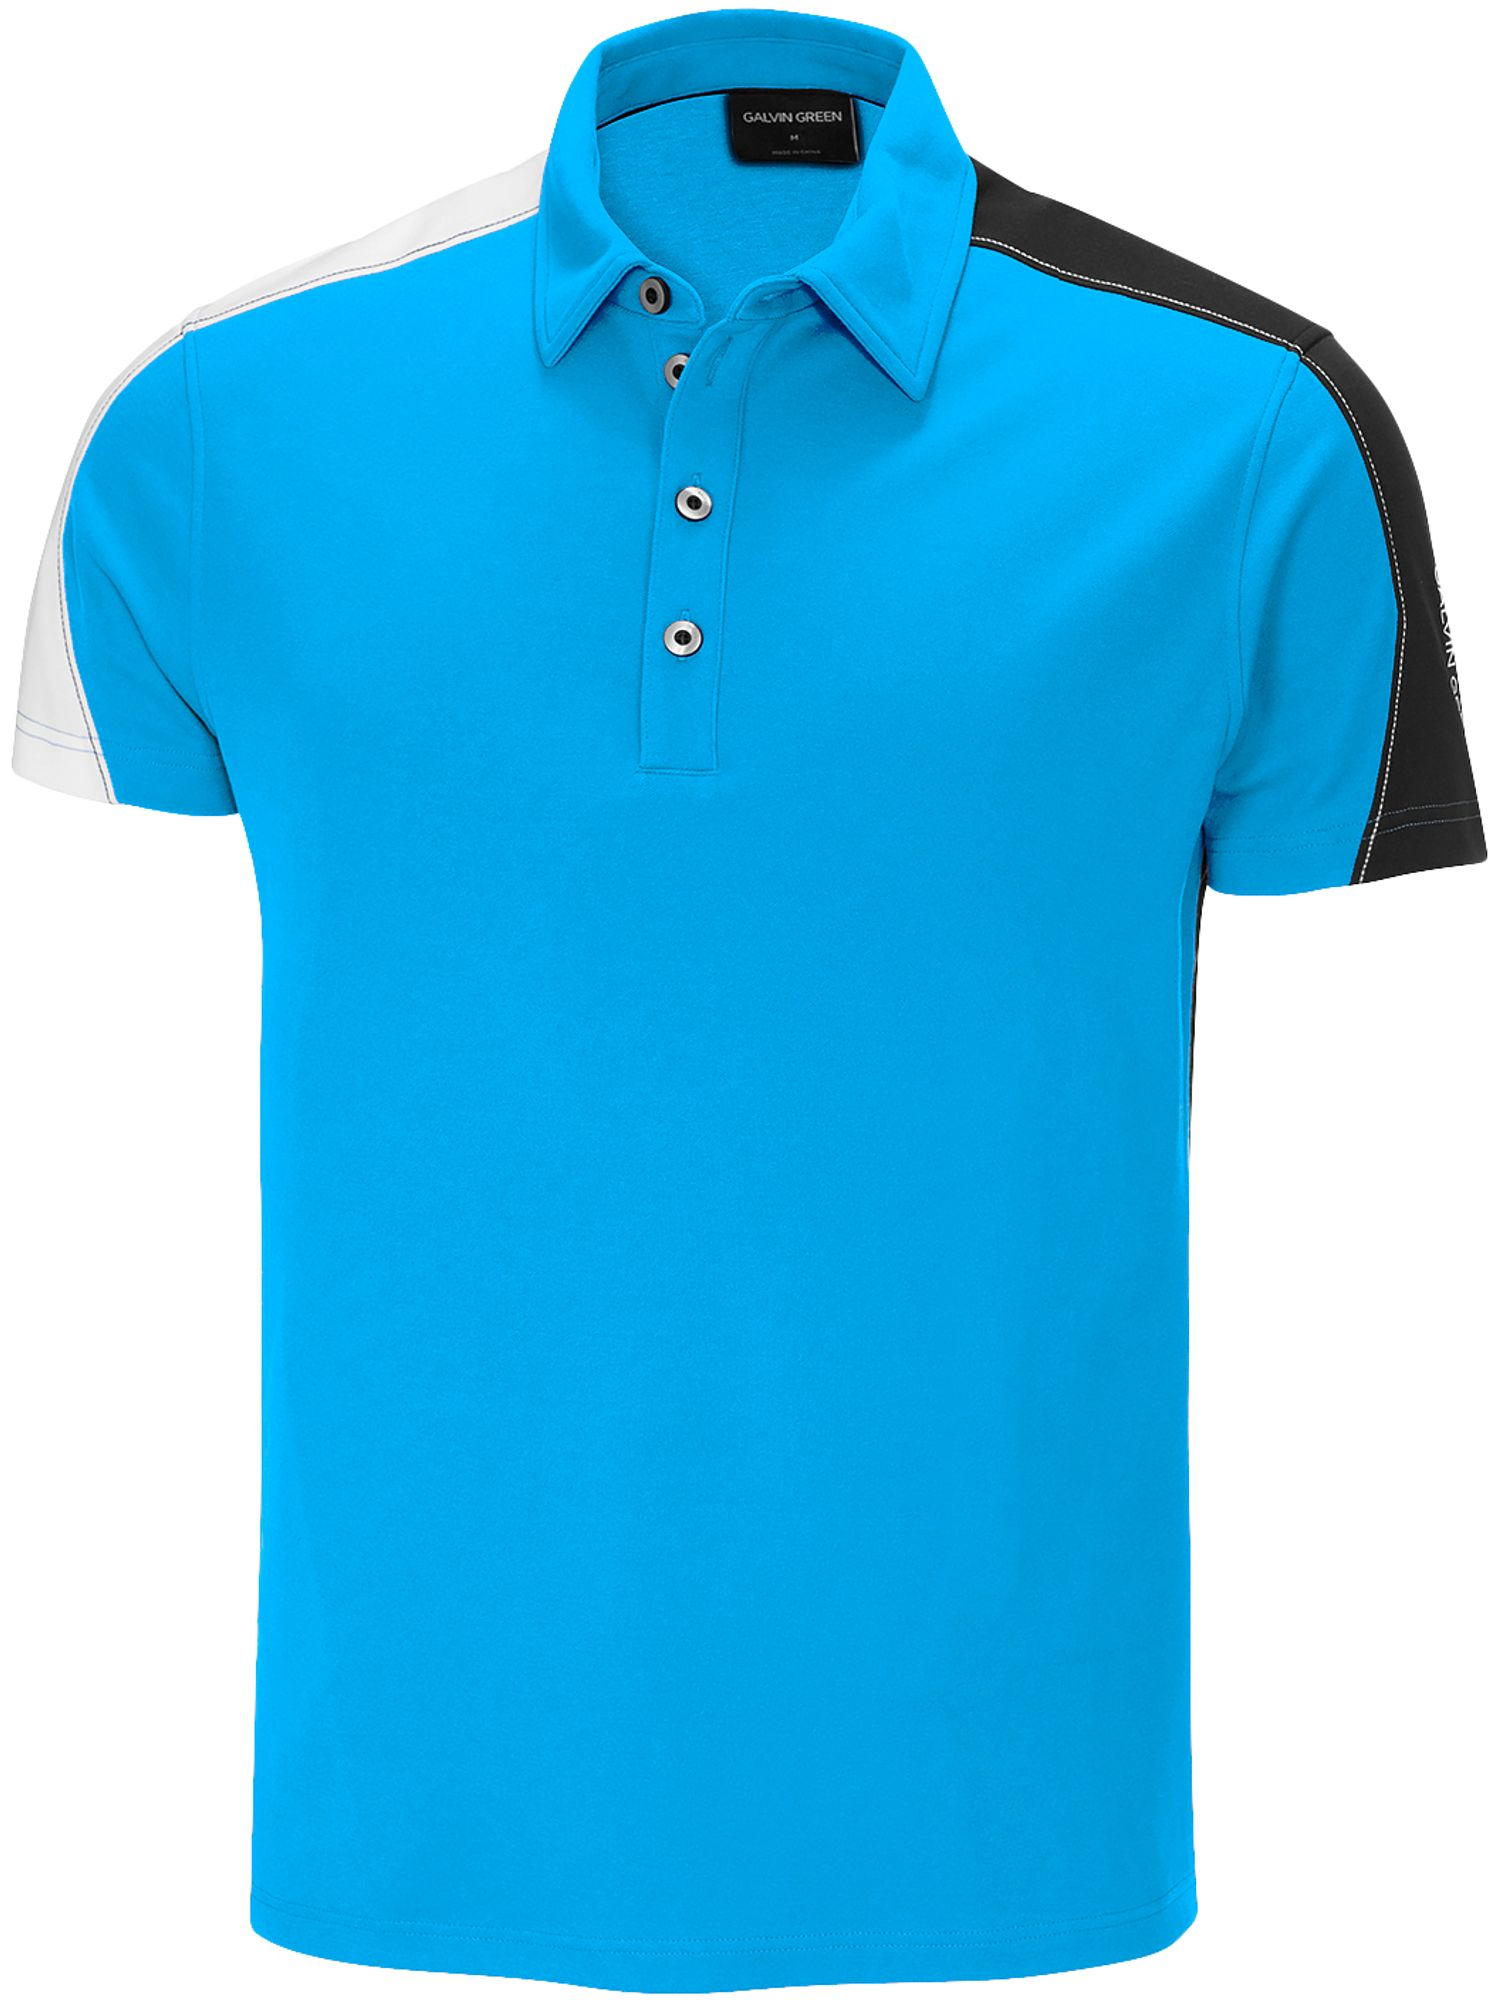 Men's Galvin Green Melvin Ventil8 Polo, Blue